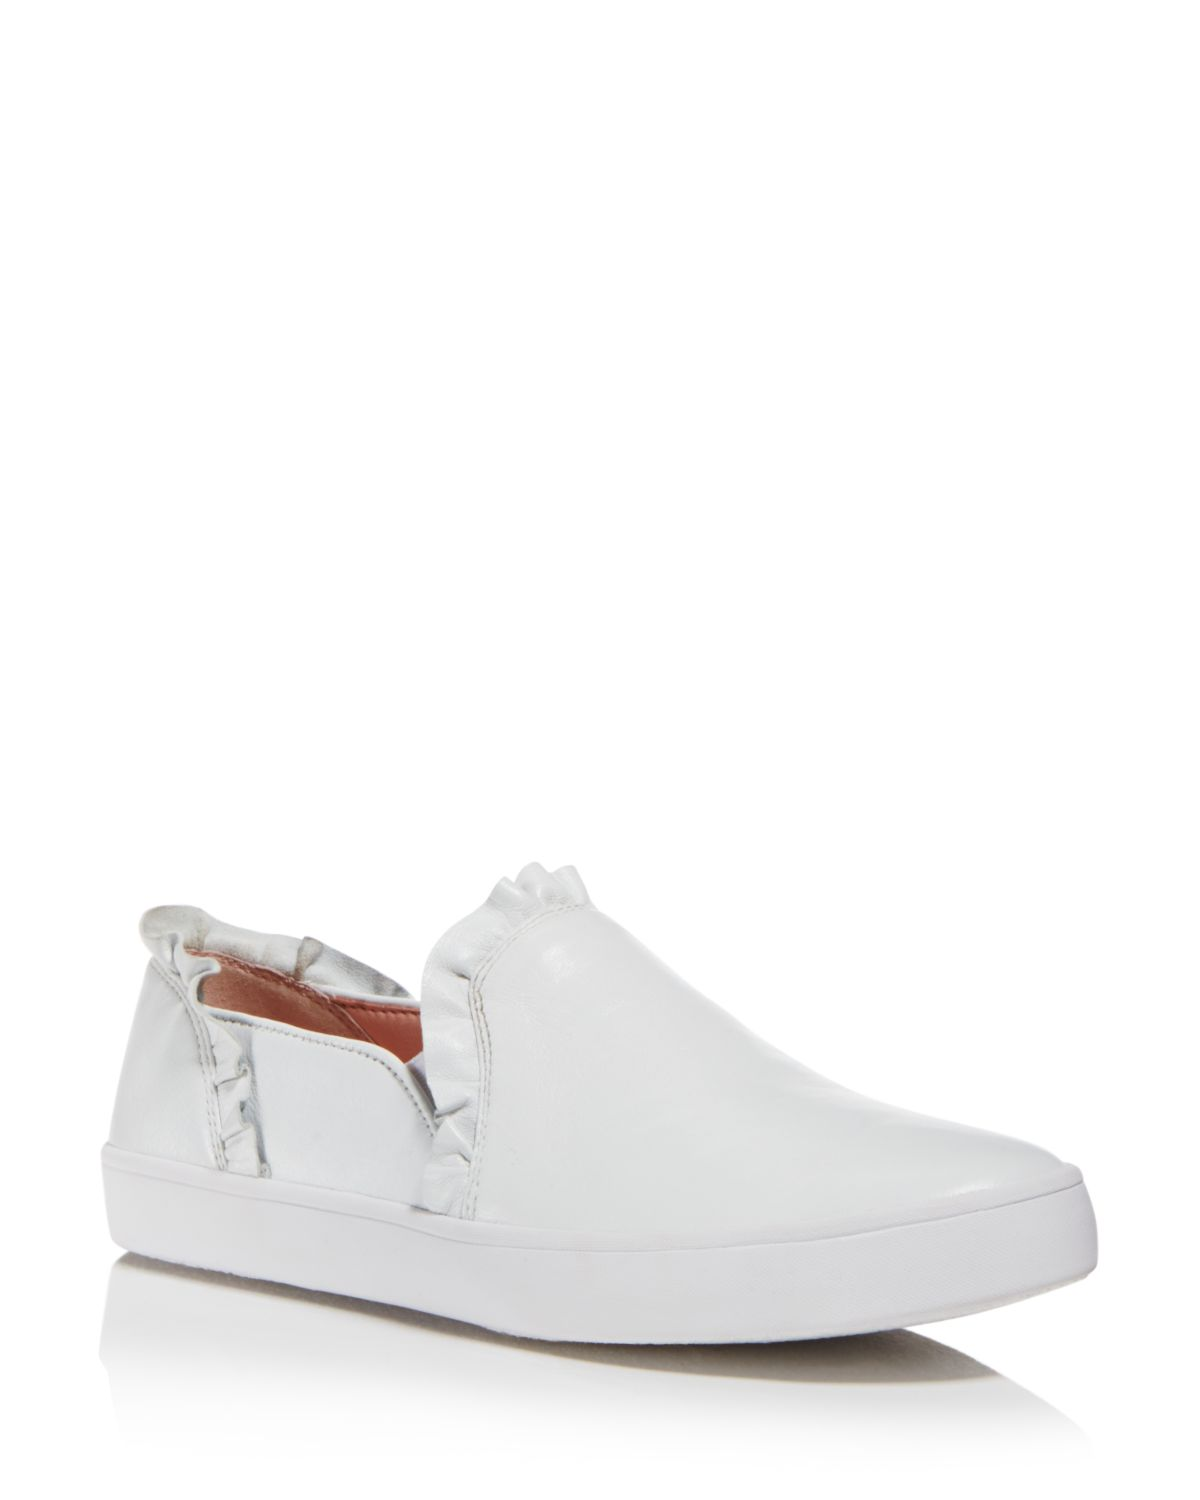 Kate Spade New York Women's Lilly Ruffle-Trim Leather Slip-On Sneakers